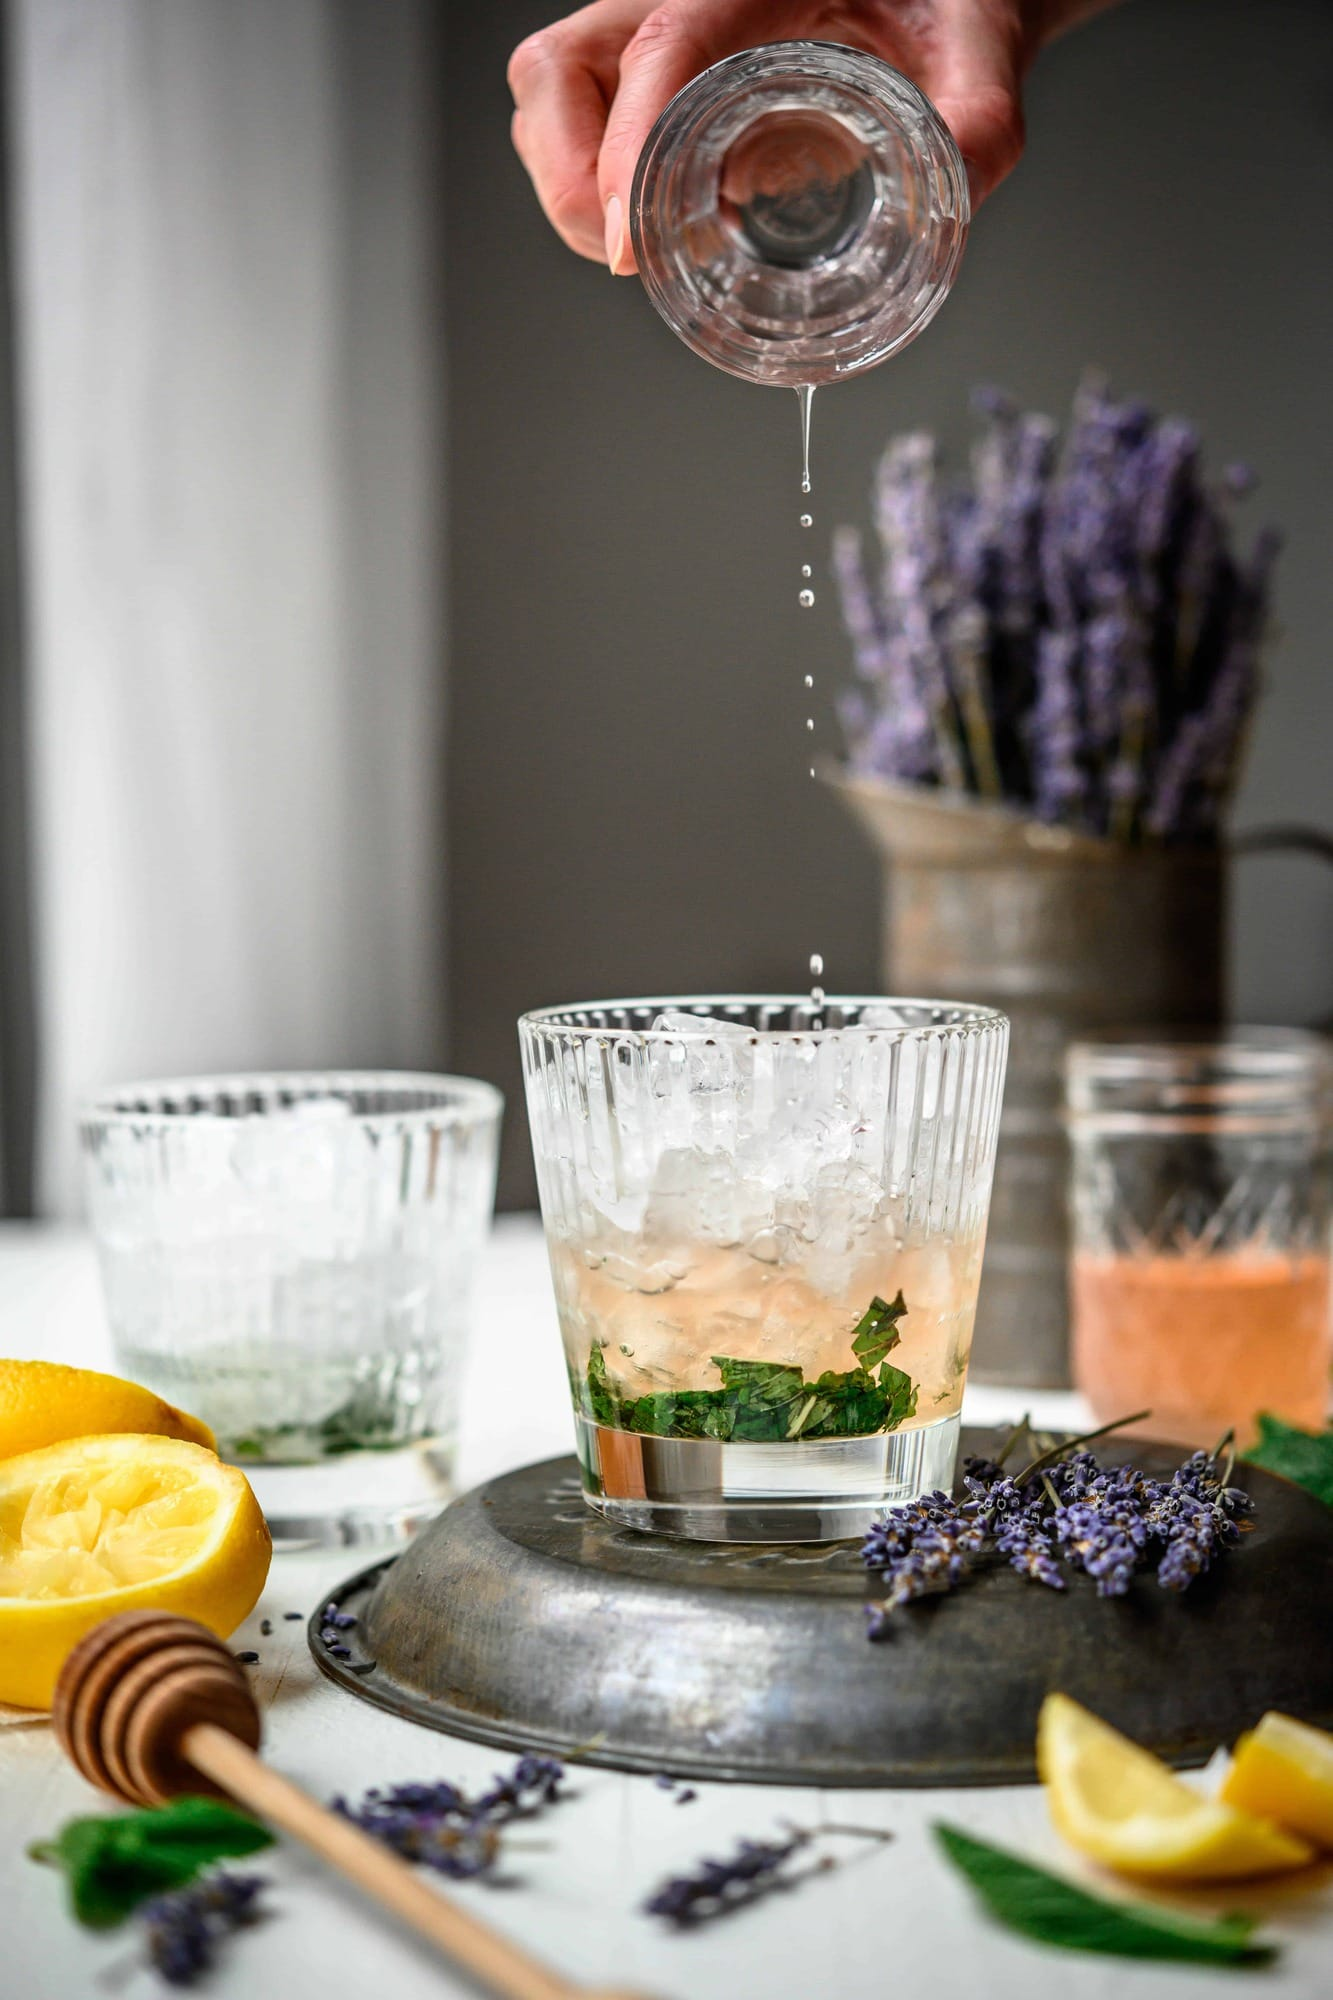 Side view of pouring homemade lemon lavender simple syrup over ice and muddled mint